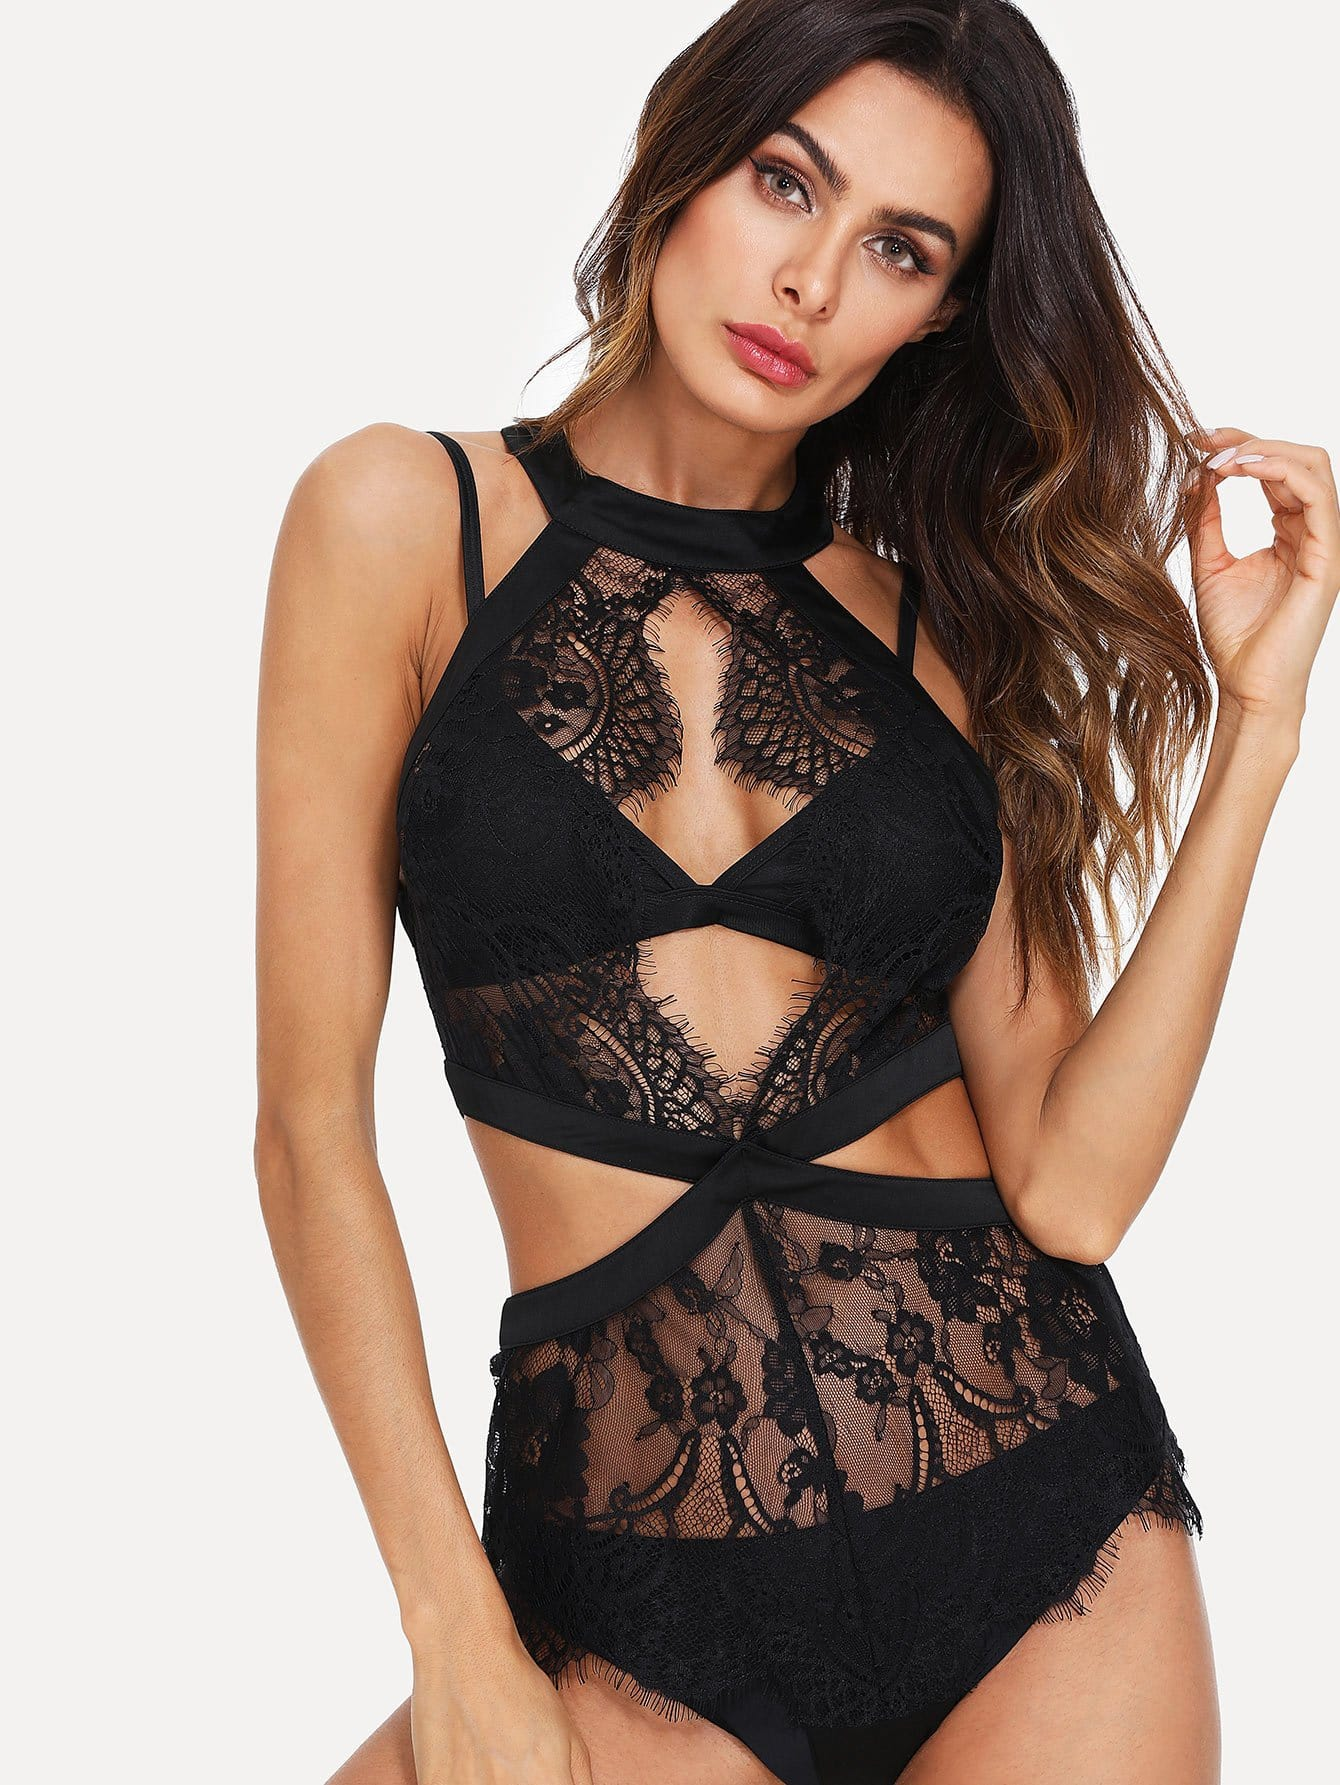 Cut Out Detail Eyelash Lace Teddy Without Bra Set pink lace detail cut out v neck see through fishnet teddy